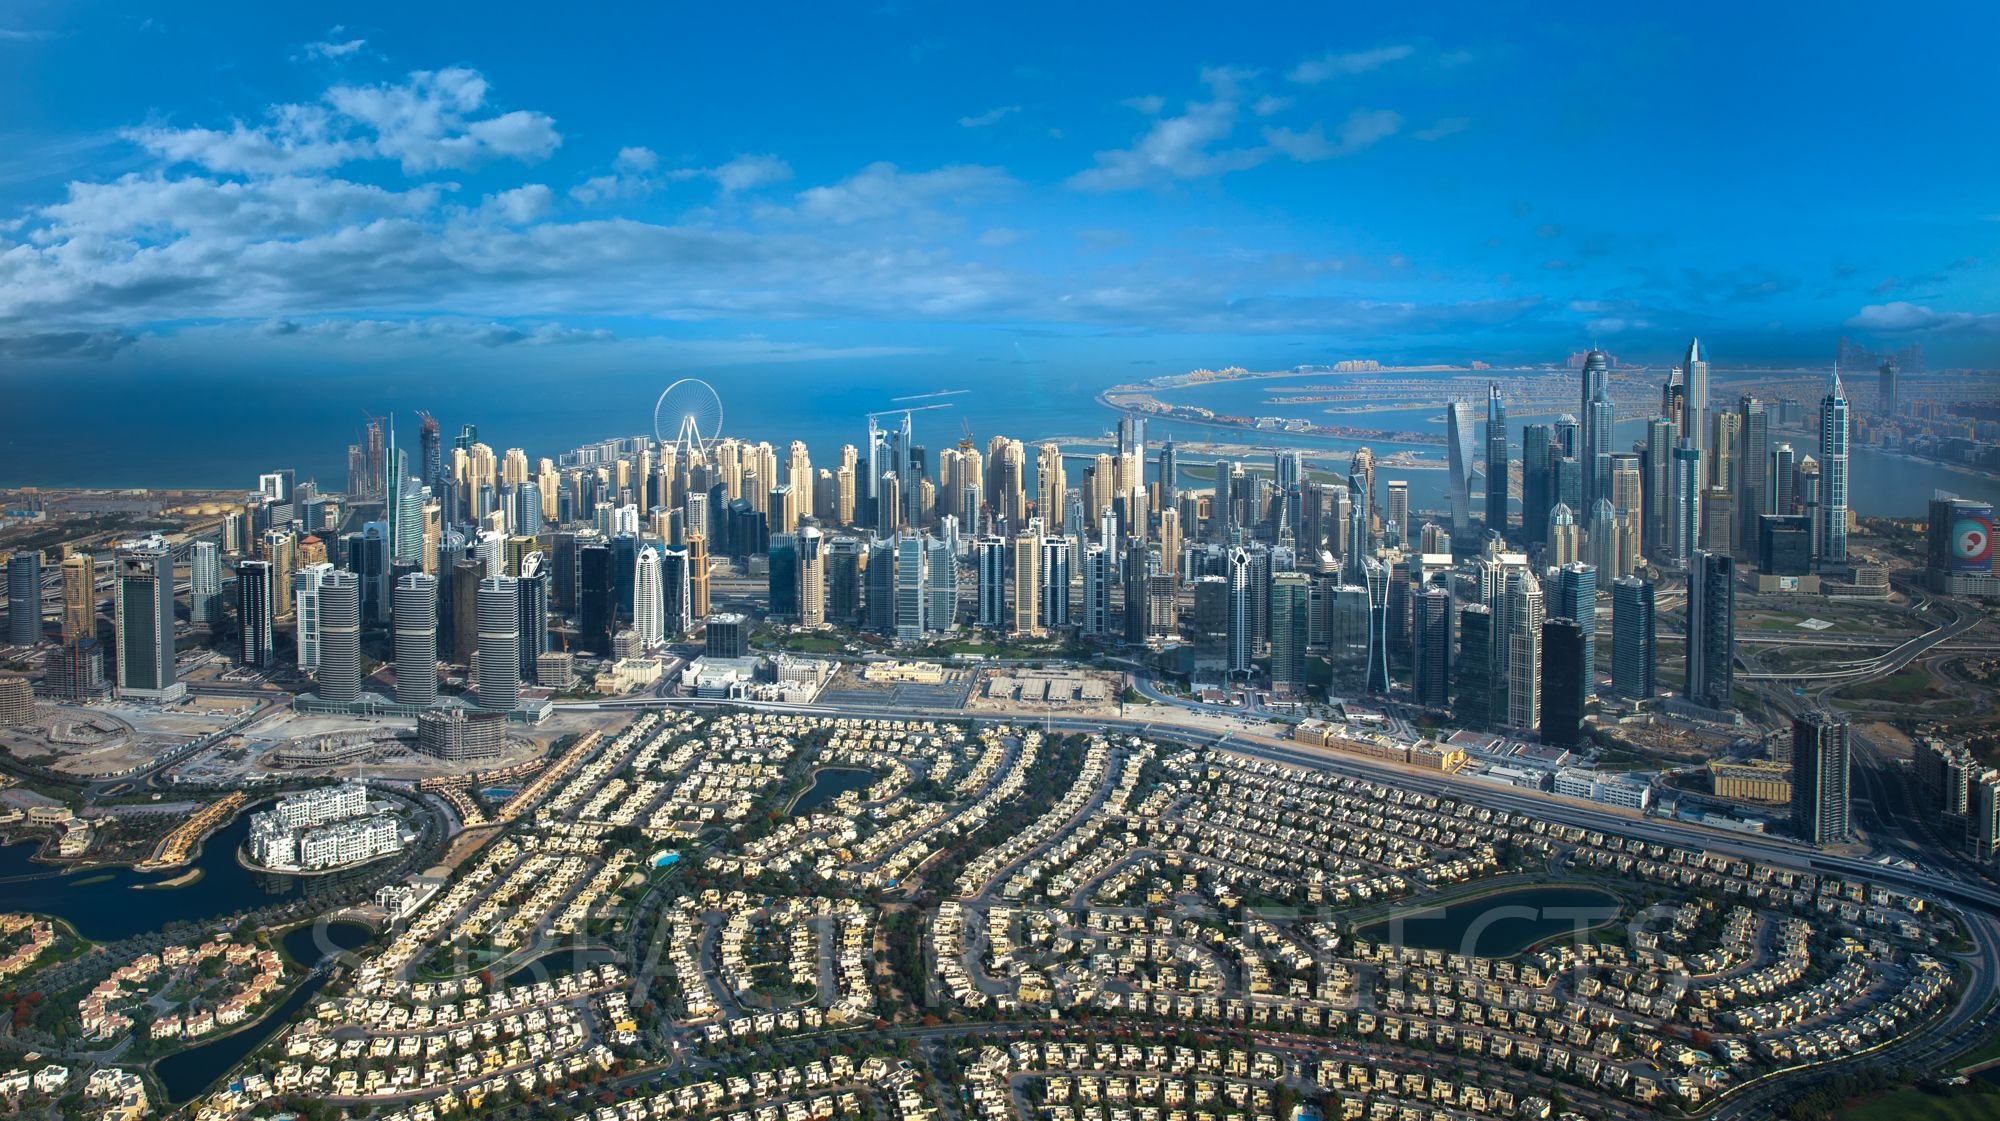 Dubai Aerial Photographer Dubai Architecture Photographer Dubai Photographer-1_079A0199-Edit.jpg